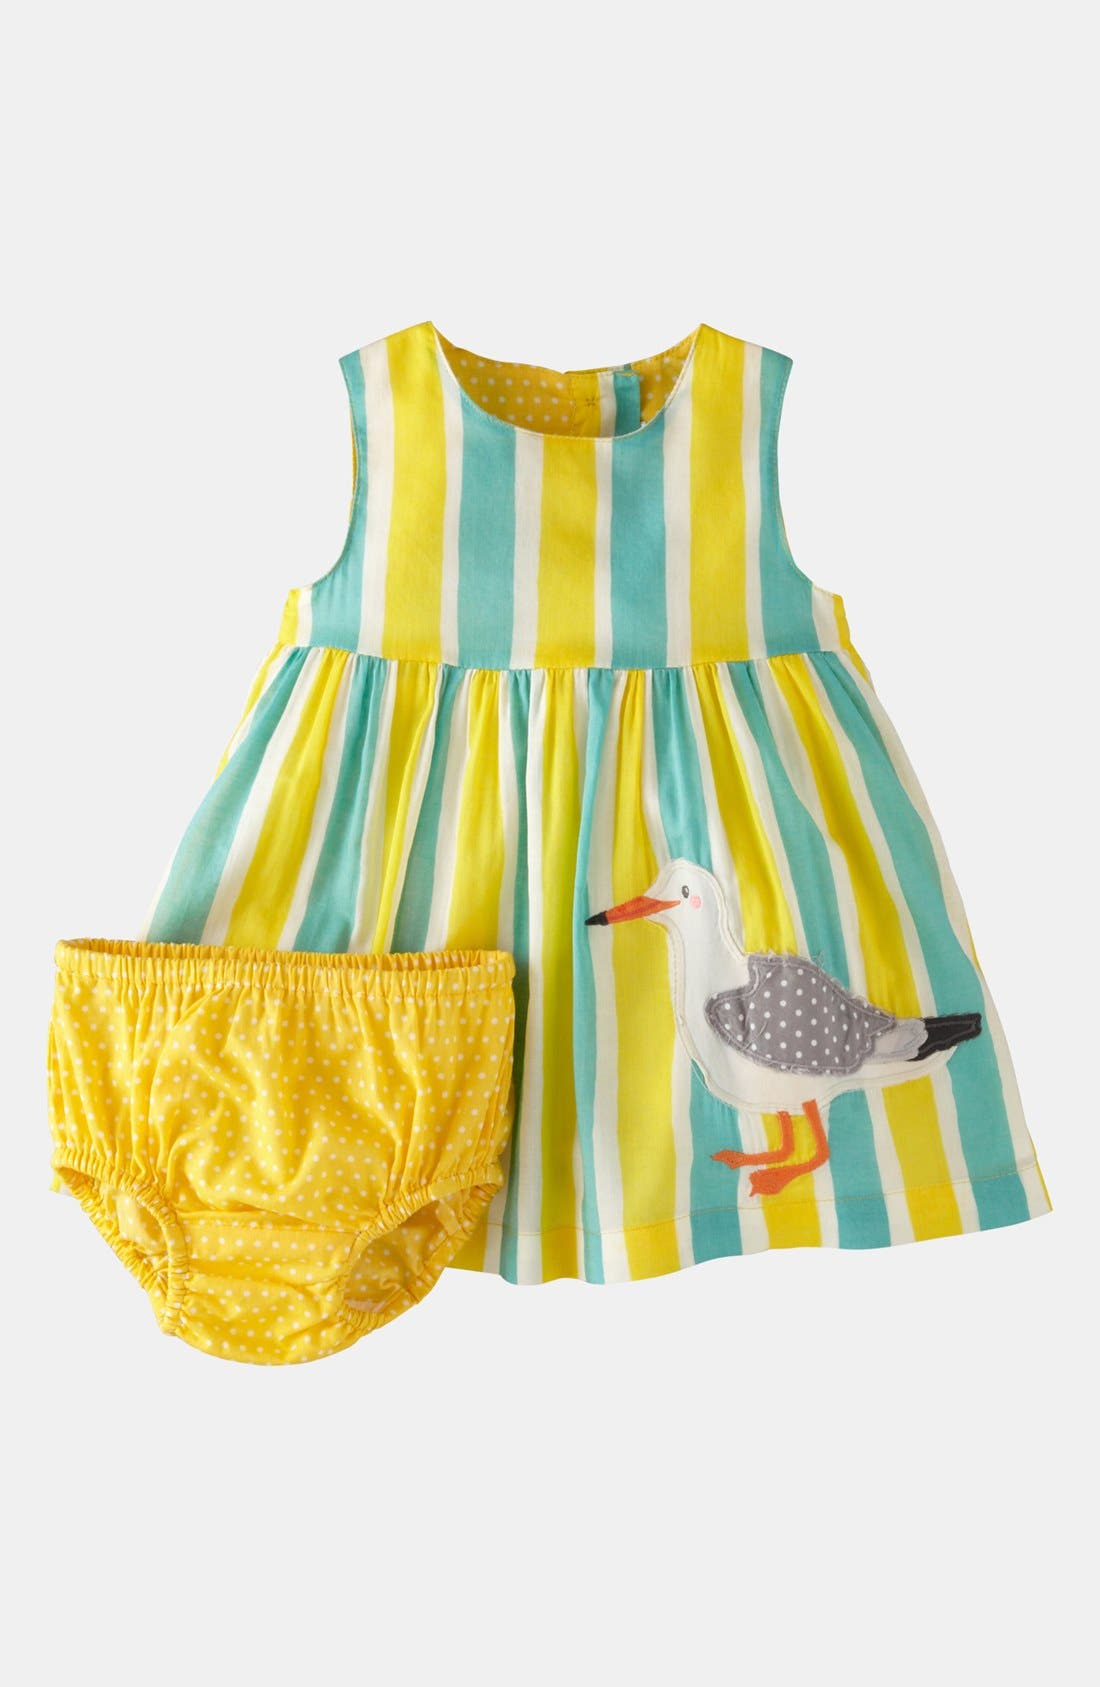 Alternate Image 1 Selected - Mini Boden 'Printed Appliqué' Dress & Bloomers (Baby)